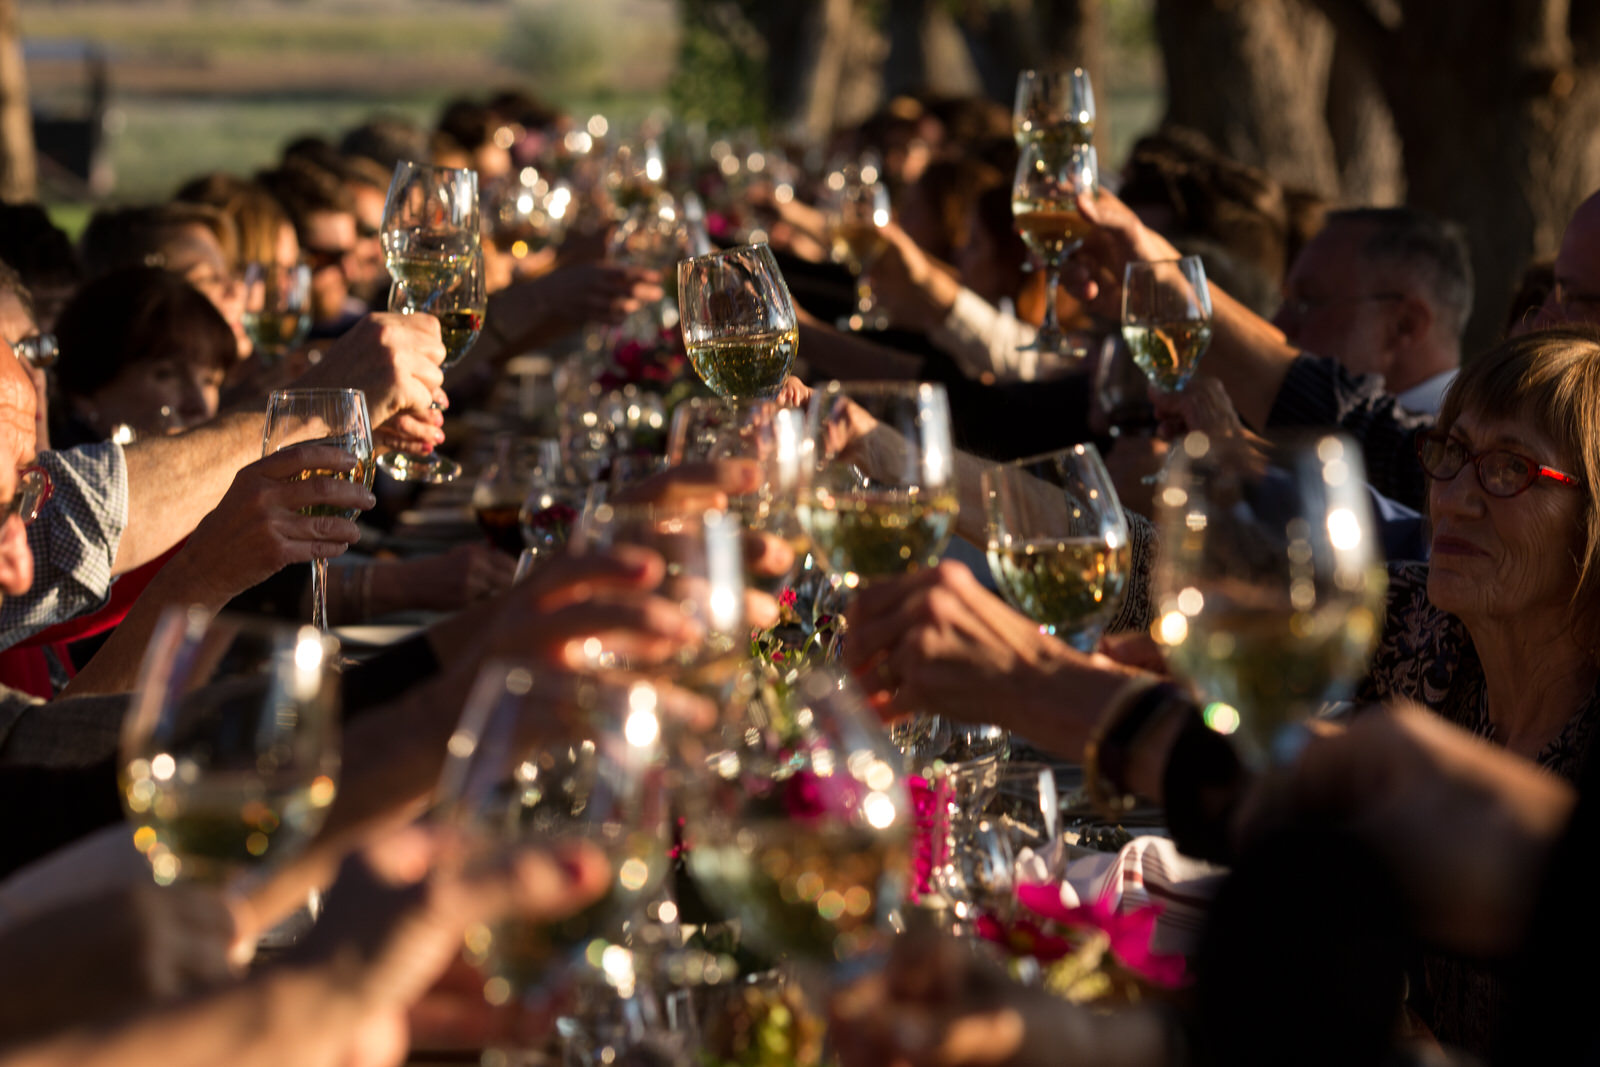 color photo during golden hour of wine glasses toasting down a long table at milston well farm